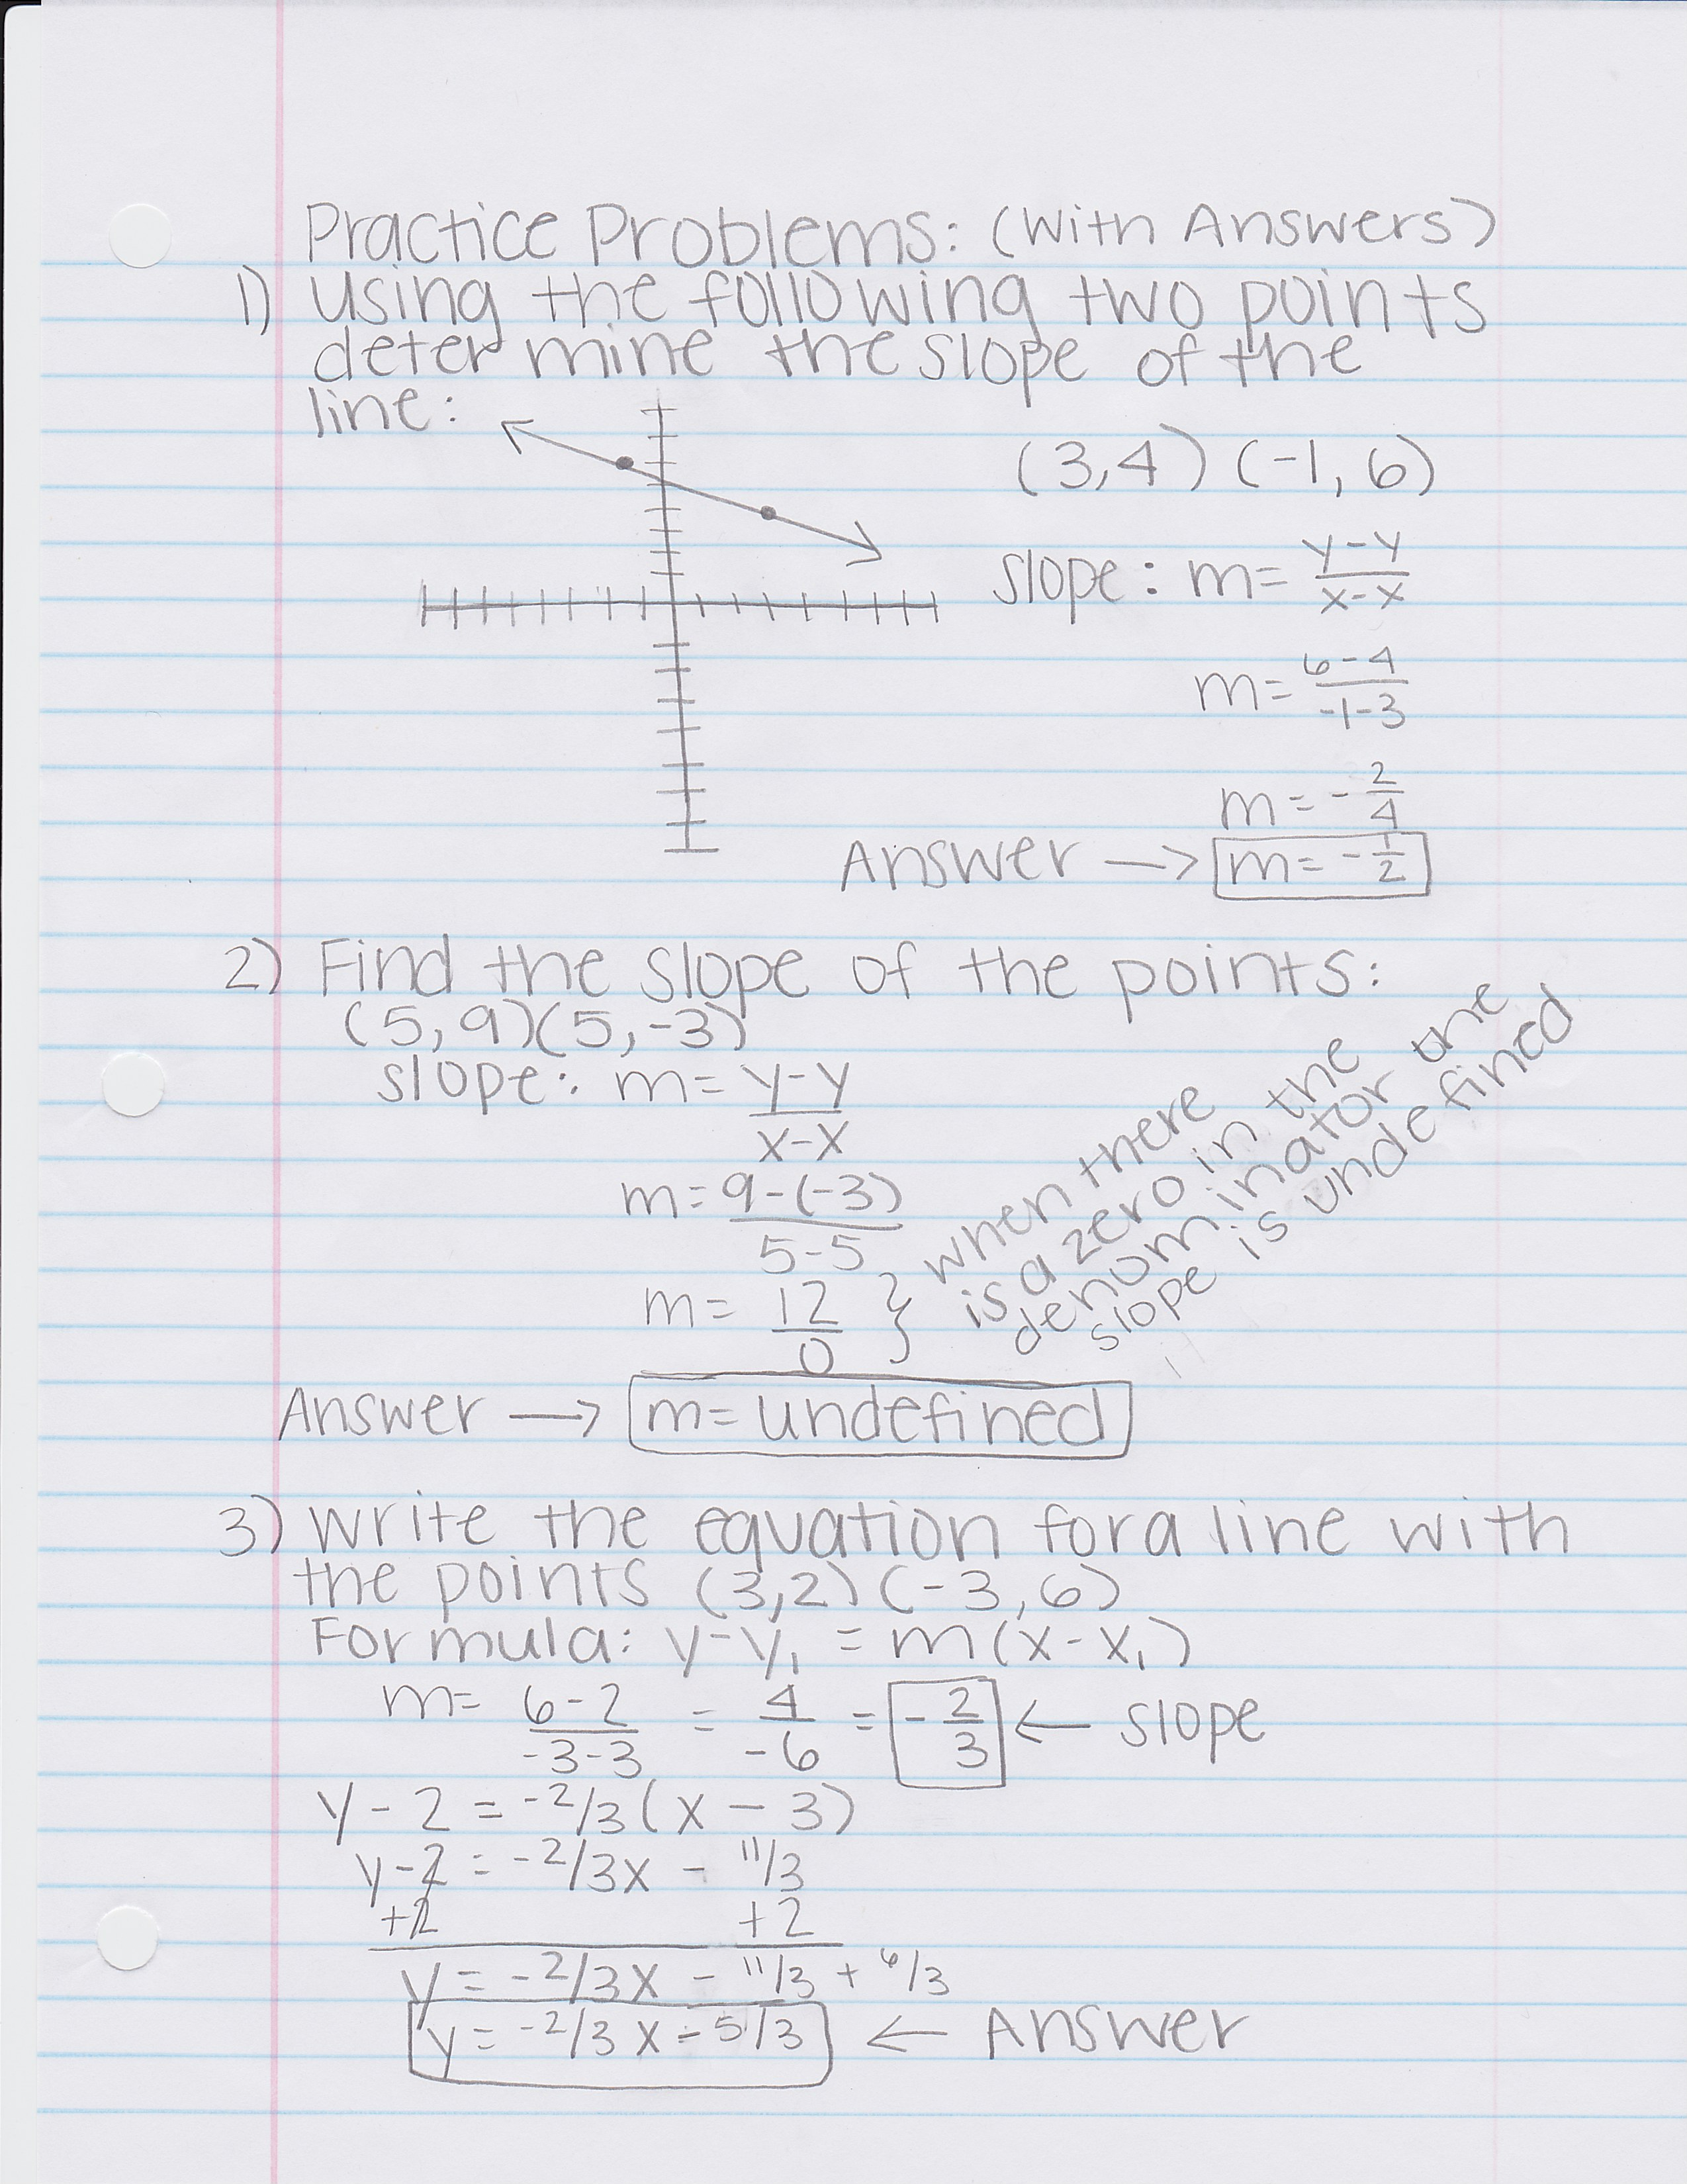 Graphing Linear Equations Problems With Answers